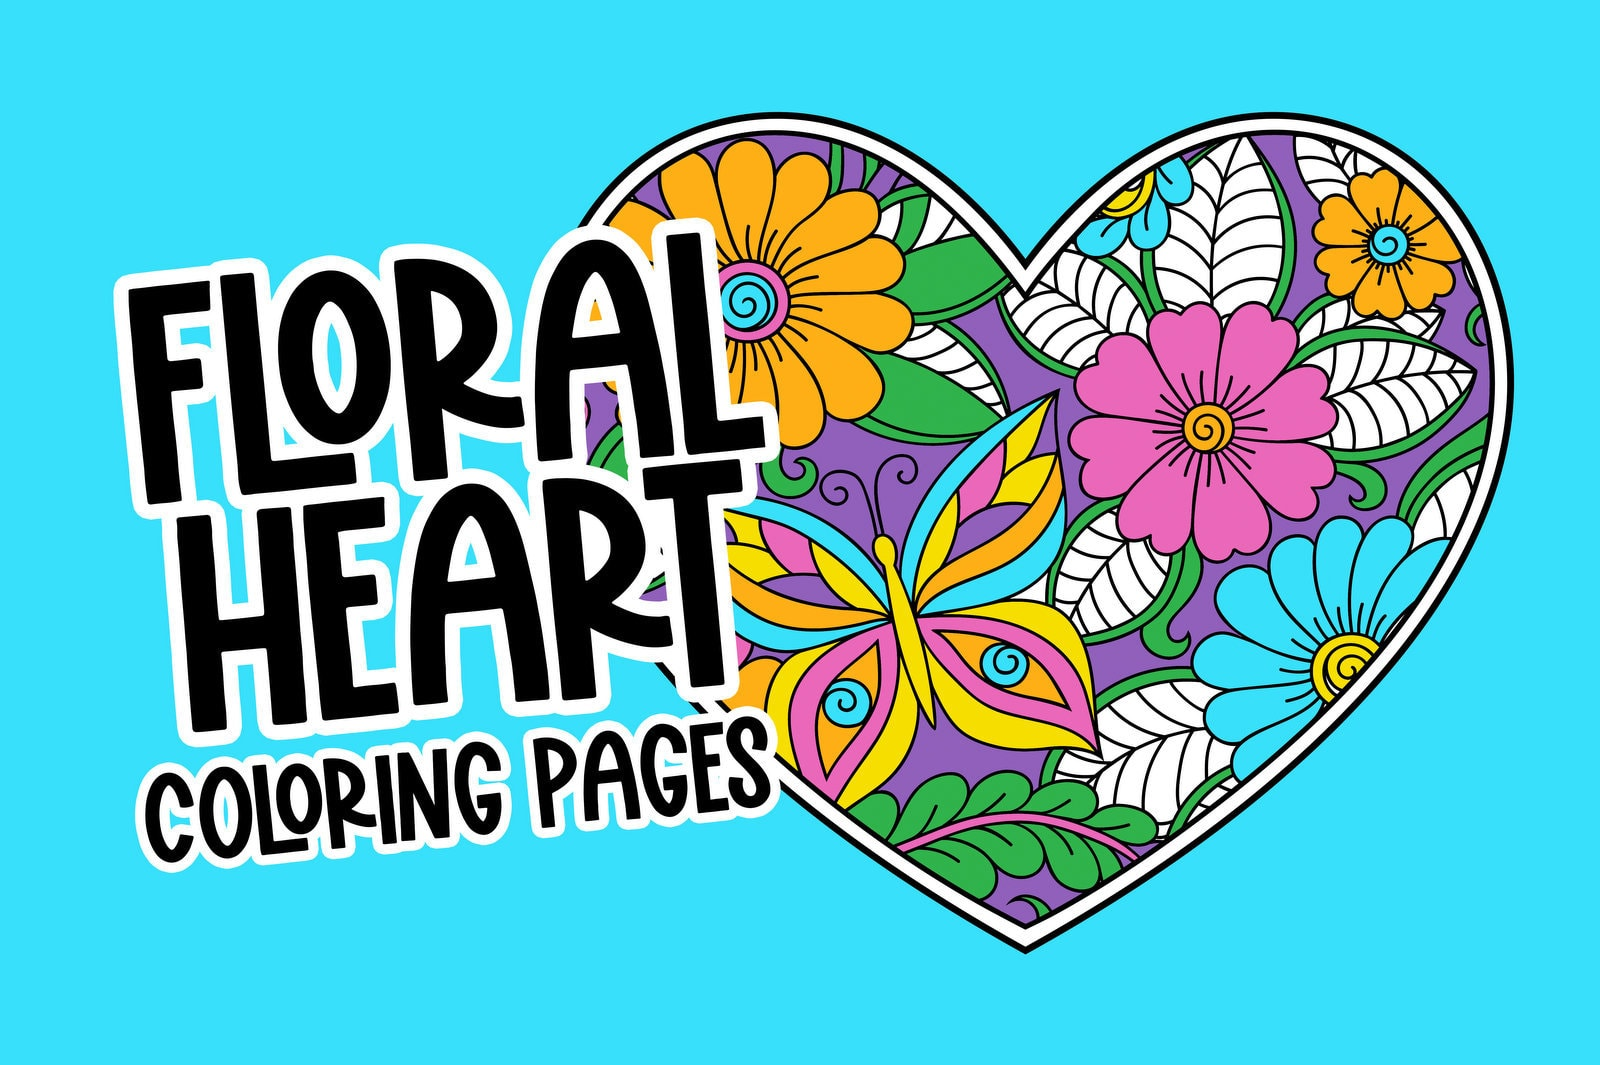 Floral heart coloring pages